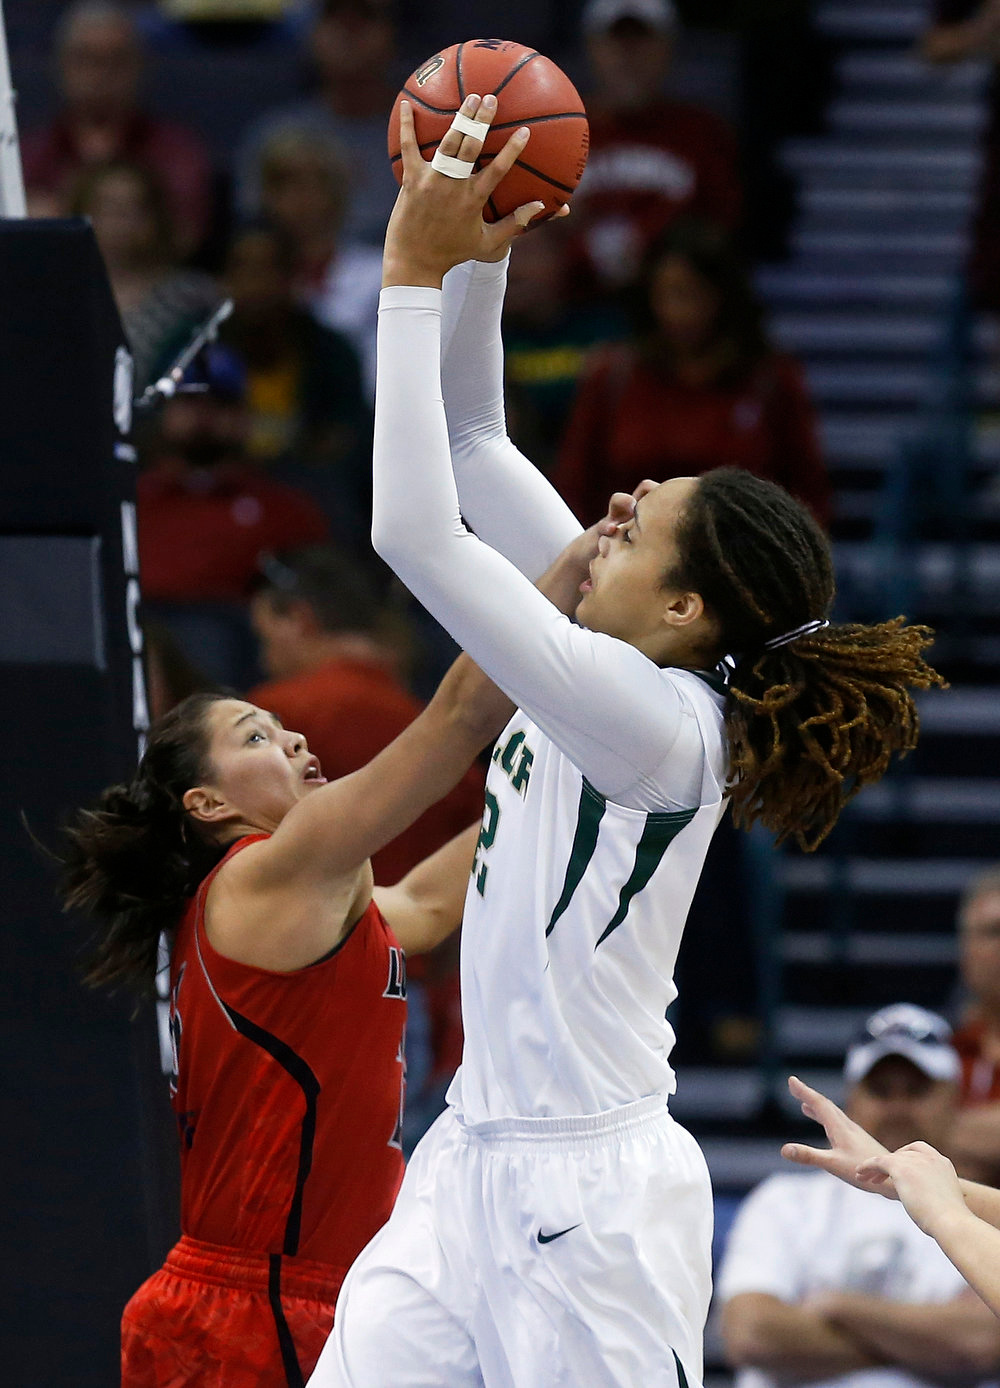 . Baylor \'s Brittney Griner (42) shoots as Louisville guard Shoni Schimmel (23) defends in the first half of a regional semifinal game in the women\'s NCAA college basketball tournament in Oklahoma City, Sunday, March 31, 2013. (AP Photo/Sue Ogrocki)